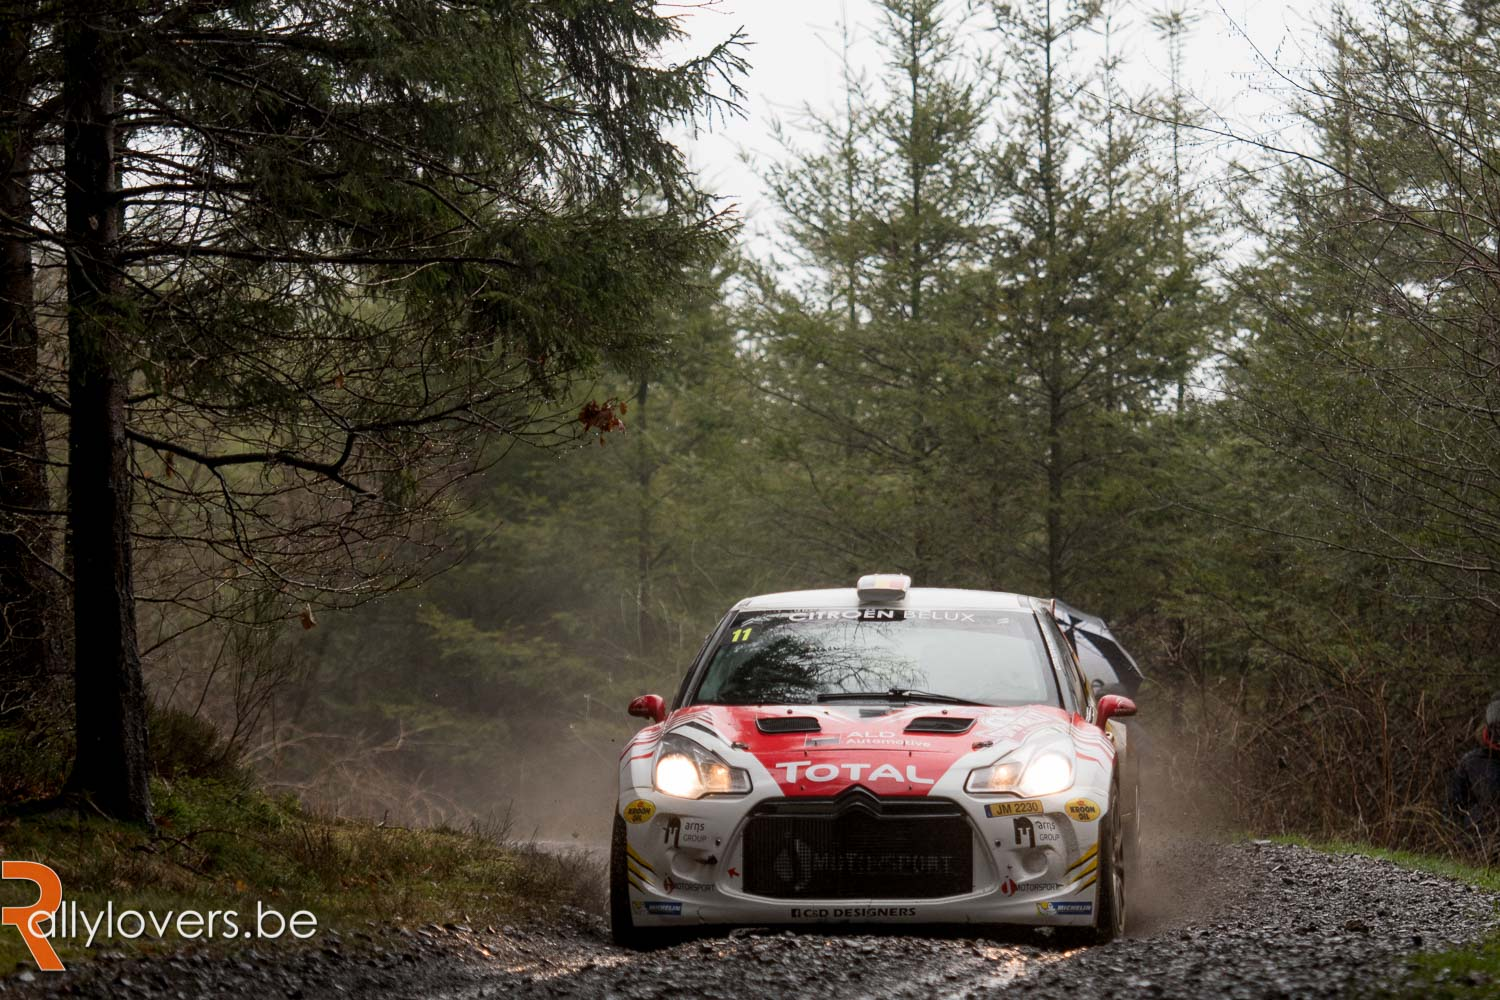 Preview - Rallye de Wallonie - Citroën Belux (Kevin Demaerschalk)`